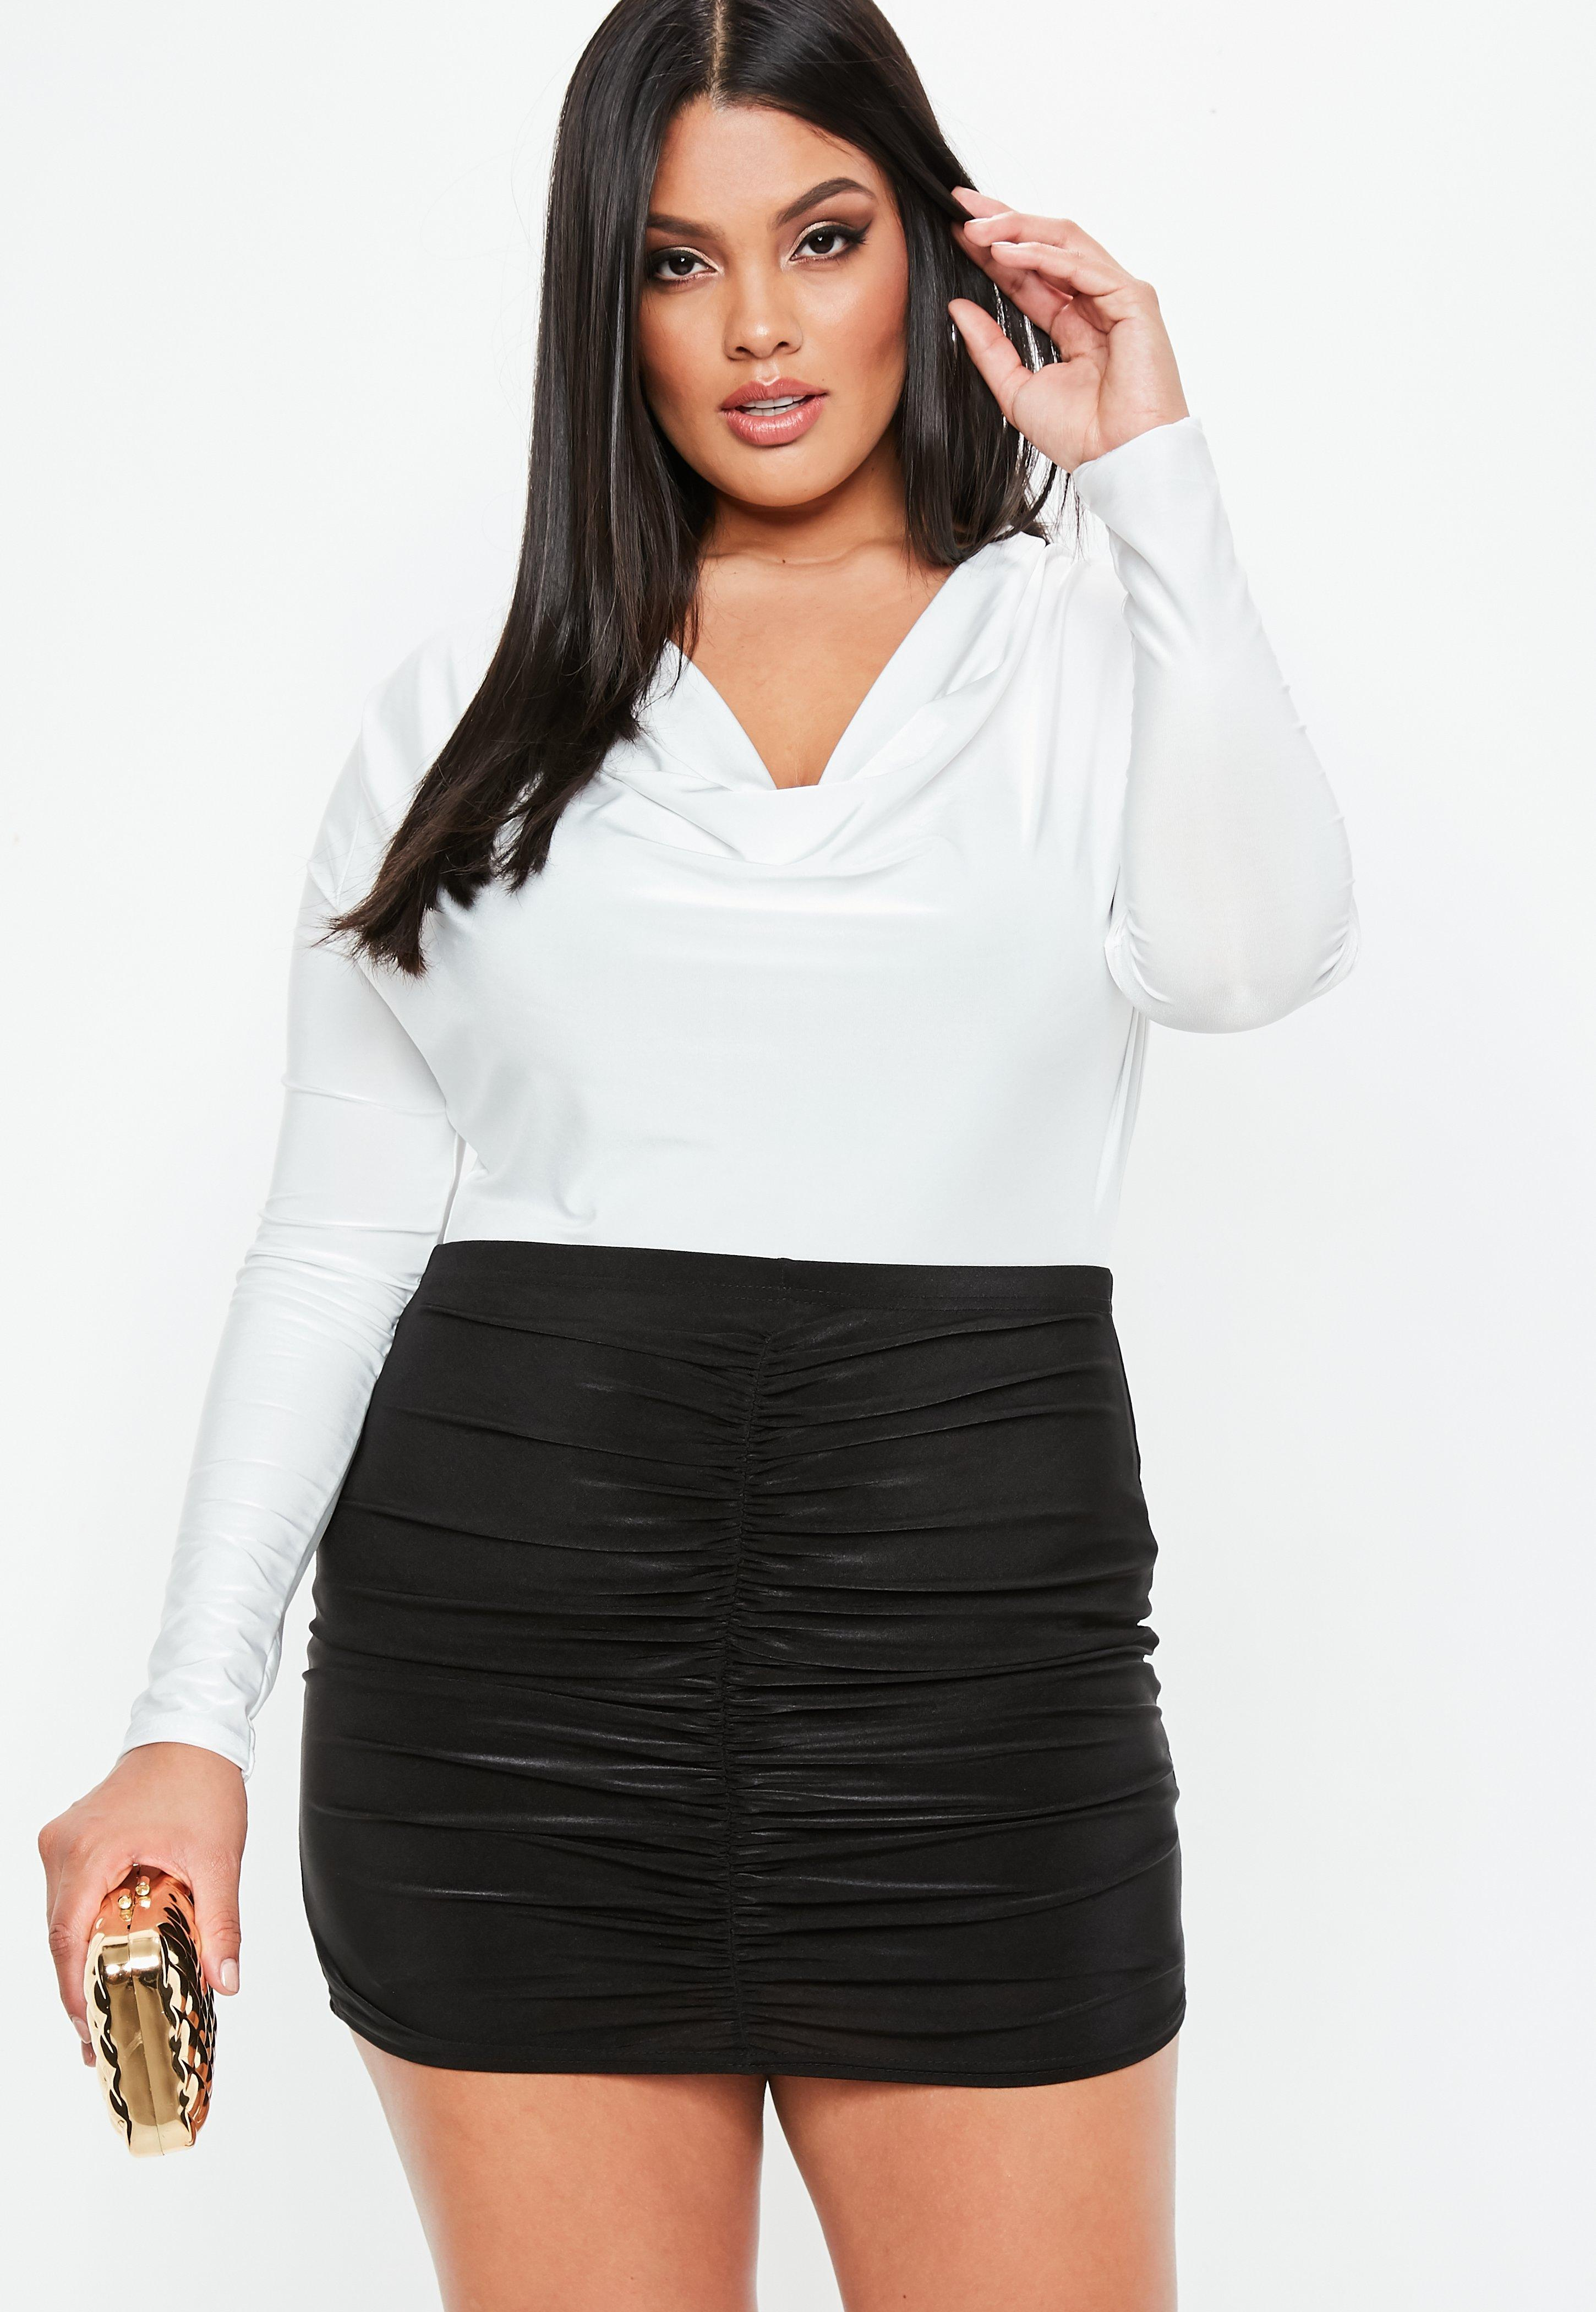 Oberteile & T-Shirts in Plus Size - Missguided DE